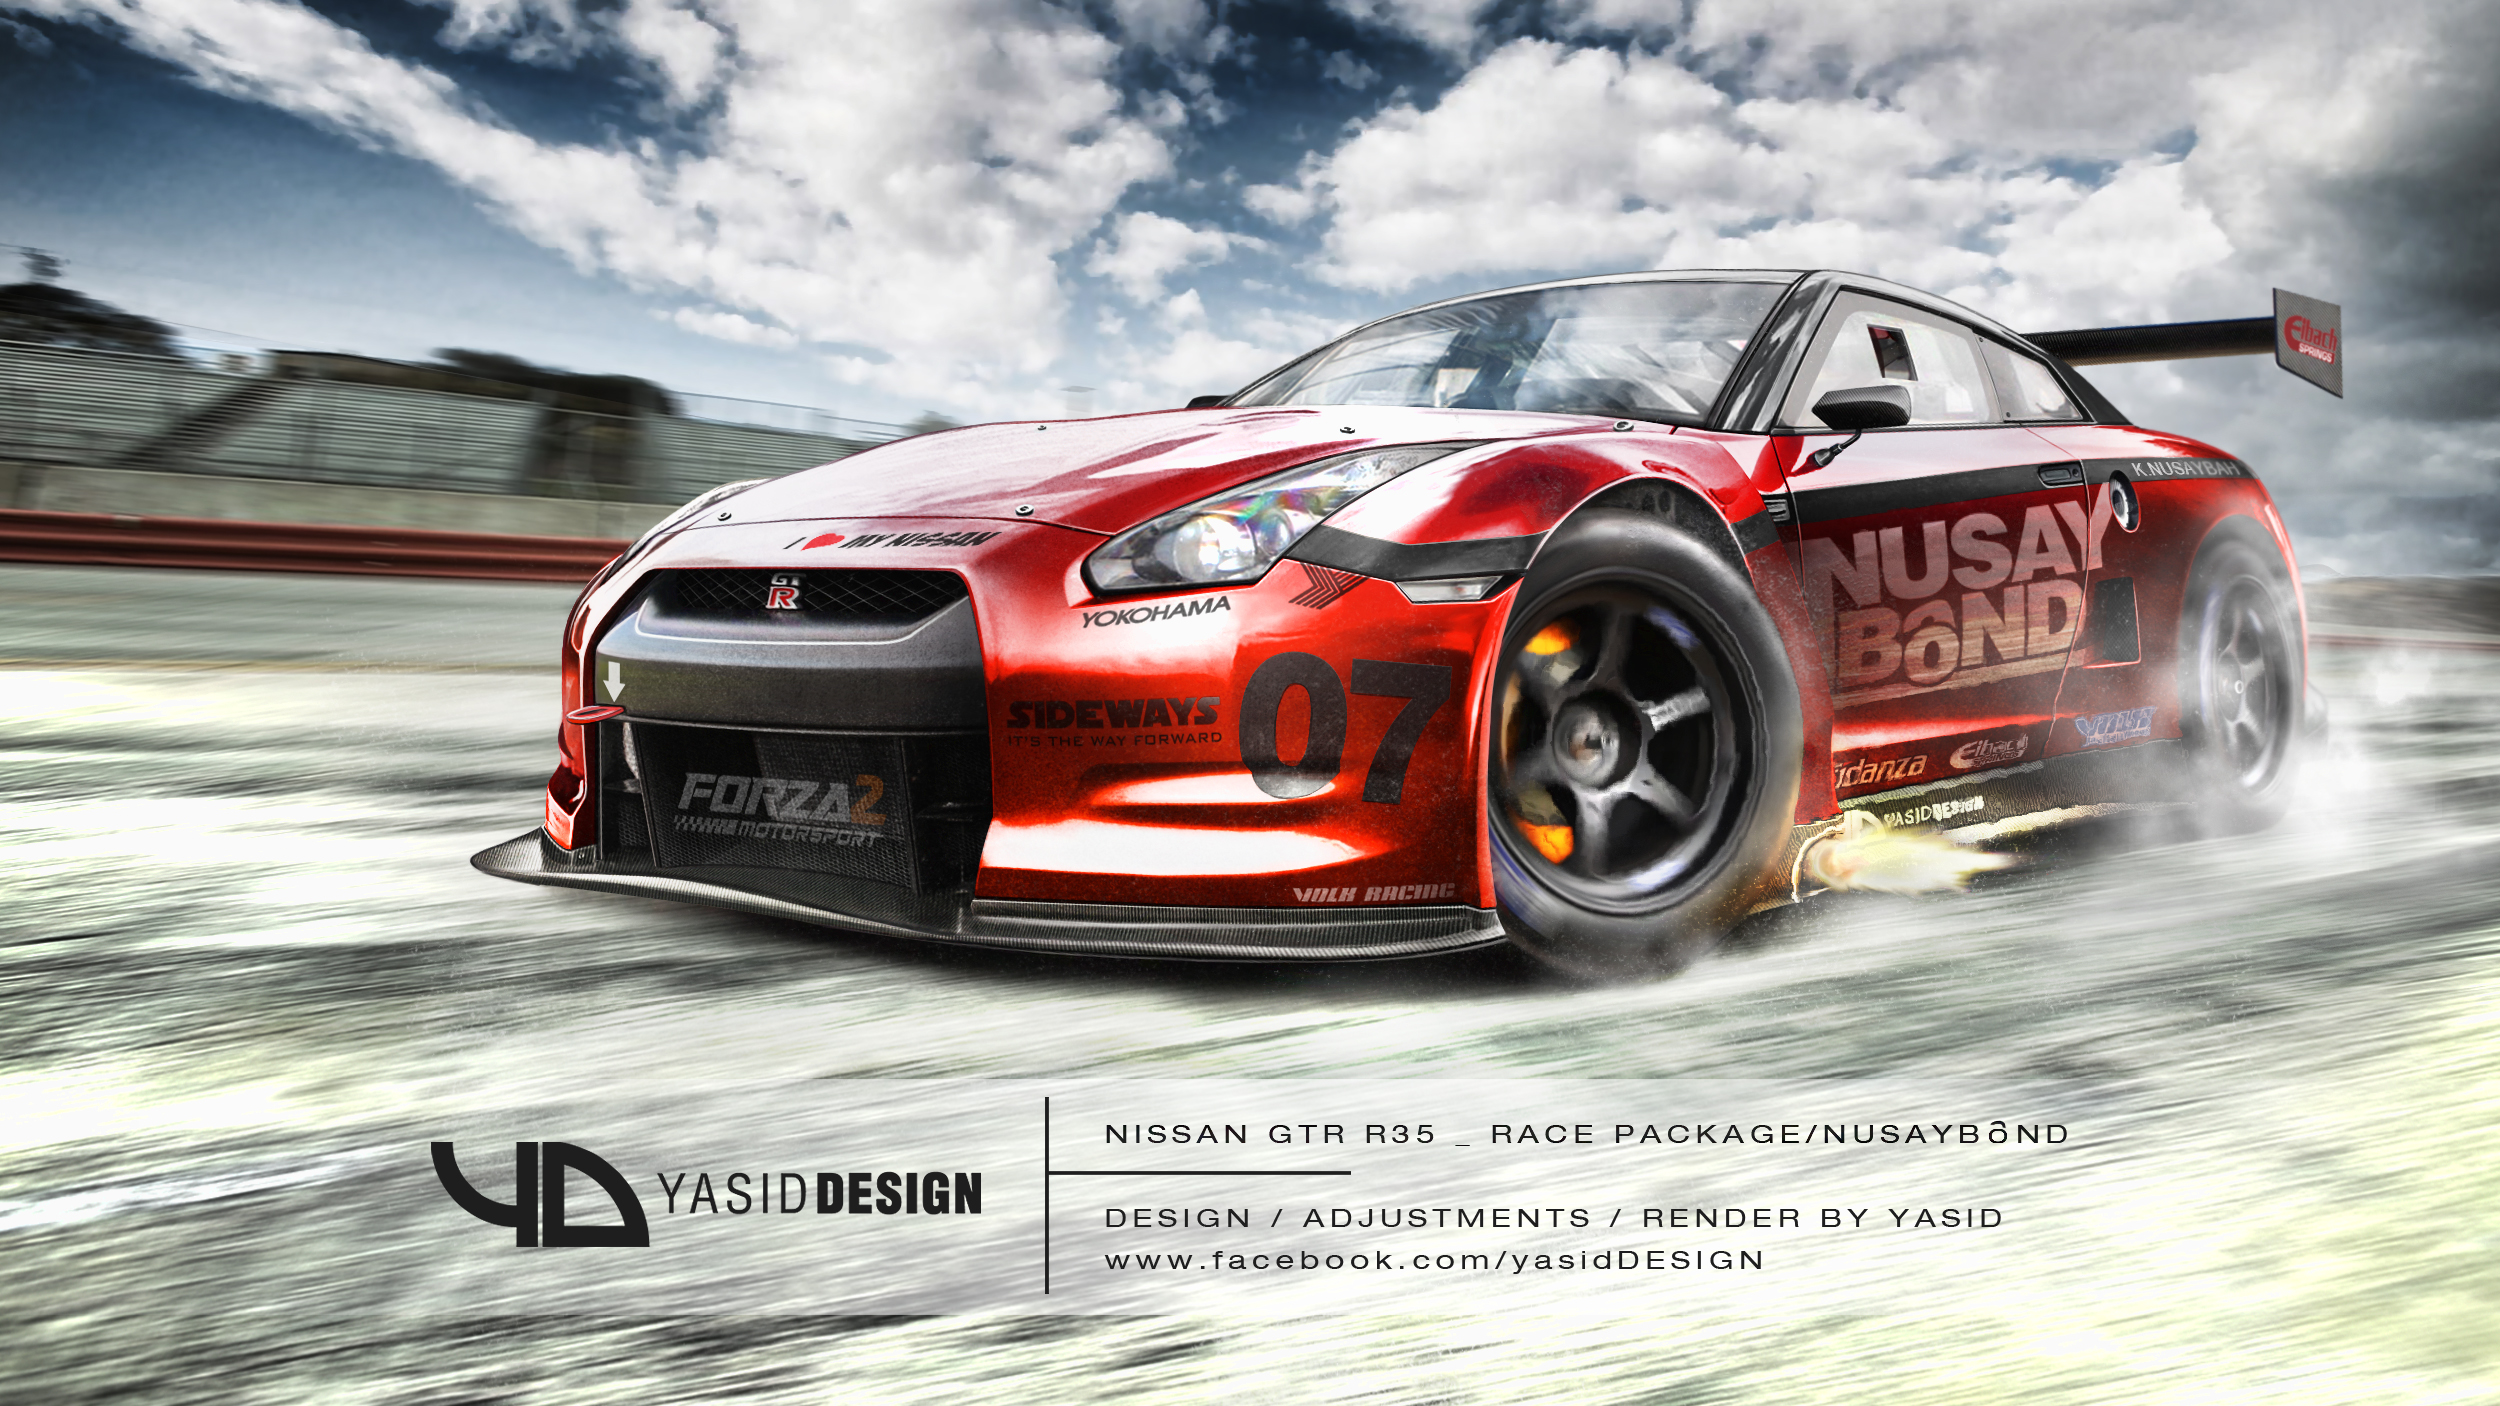 Nissan Gtr R35 Race Package Nusaybond By Yasiddesign On